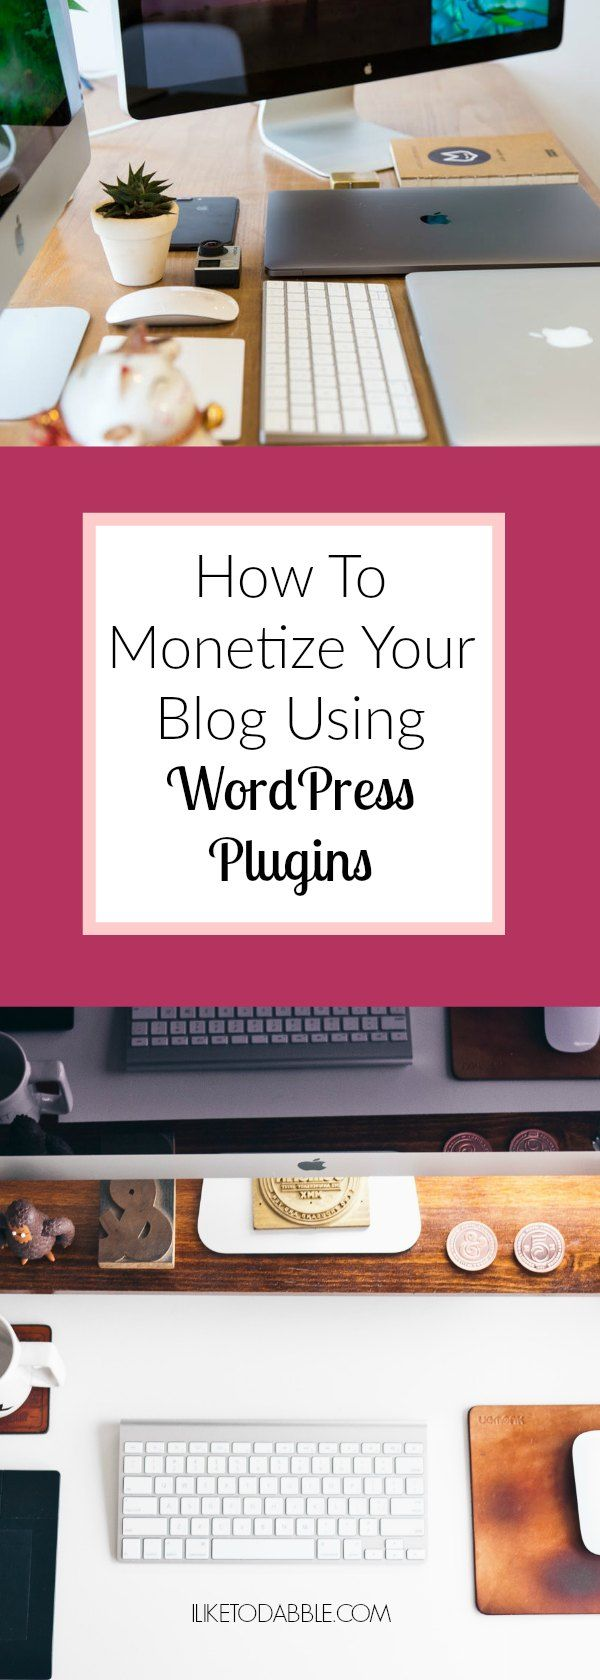 Monetize Your Blog With FREE WordPress Plugins!